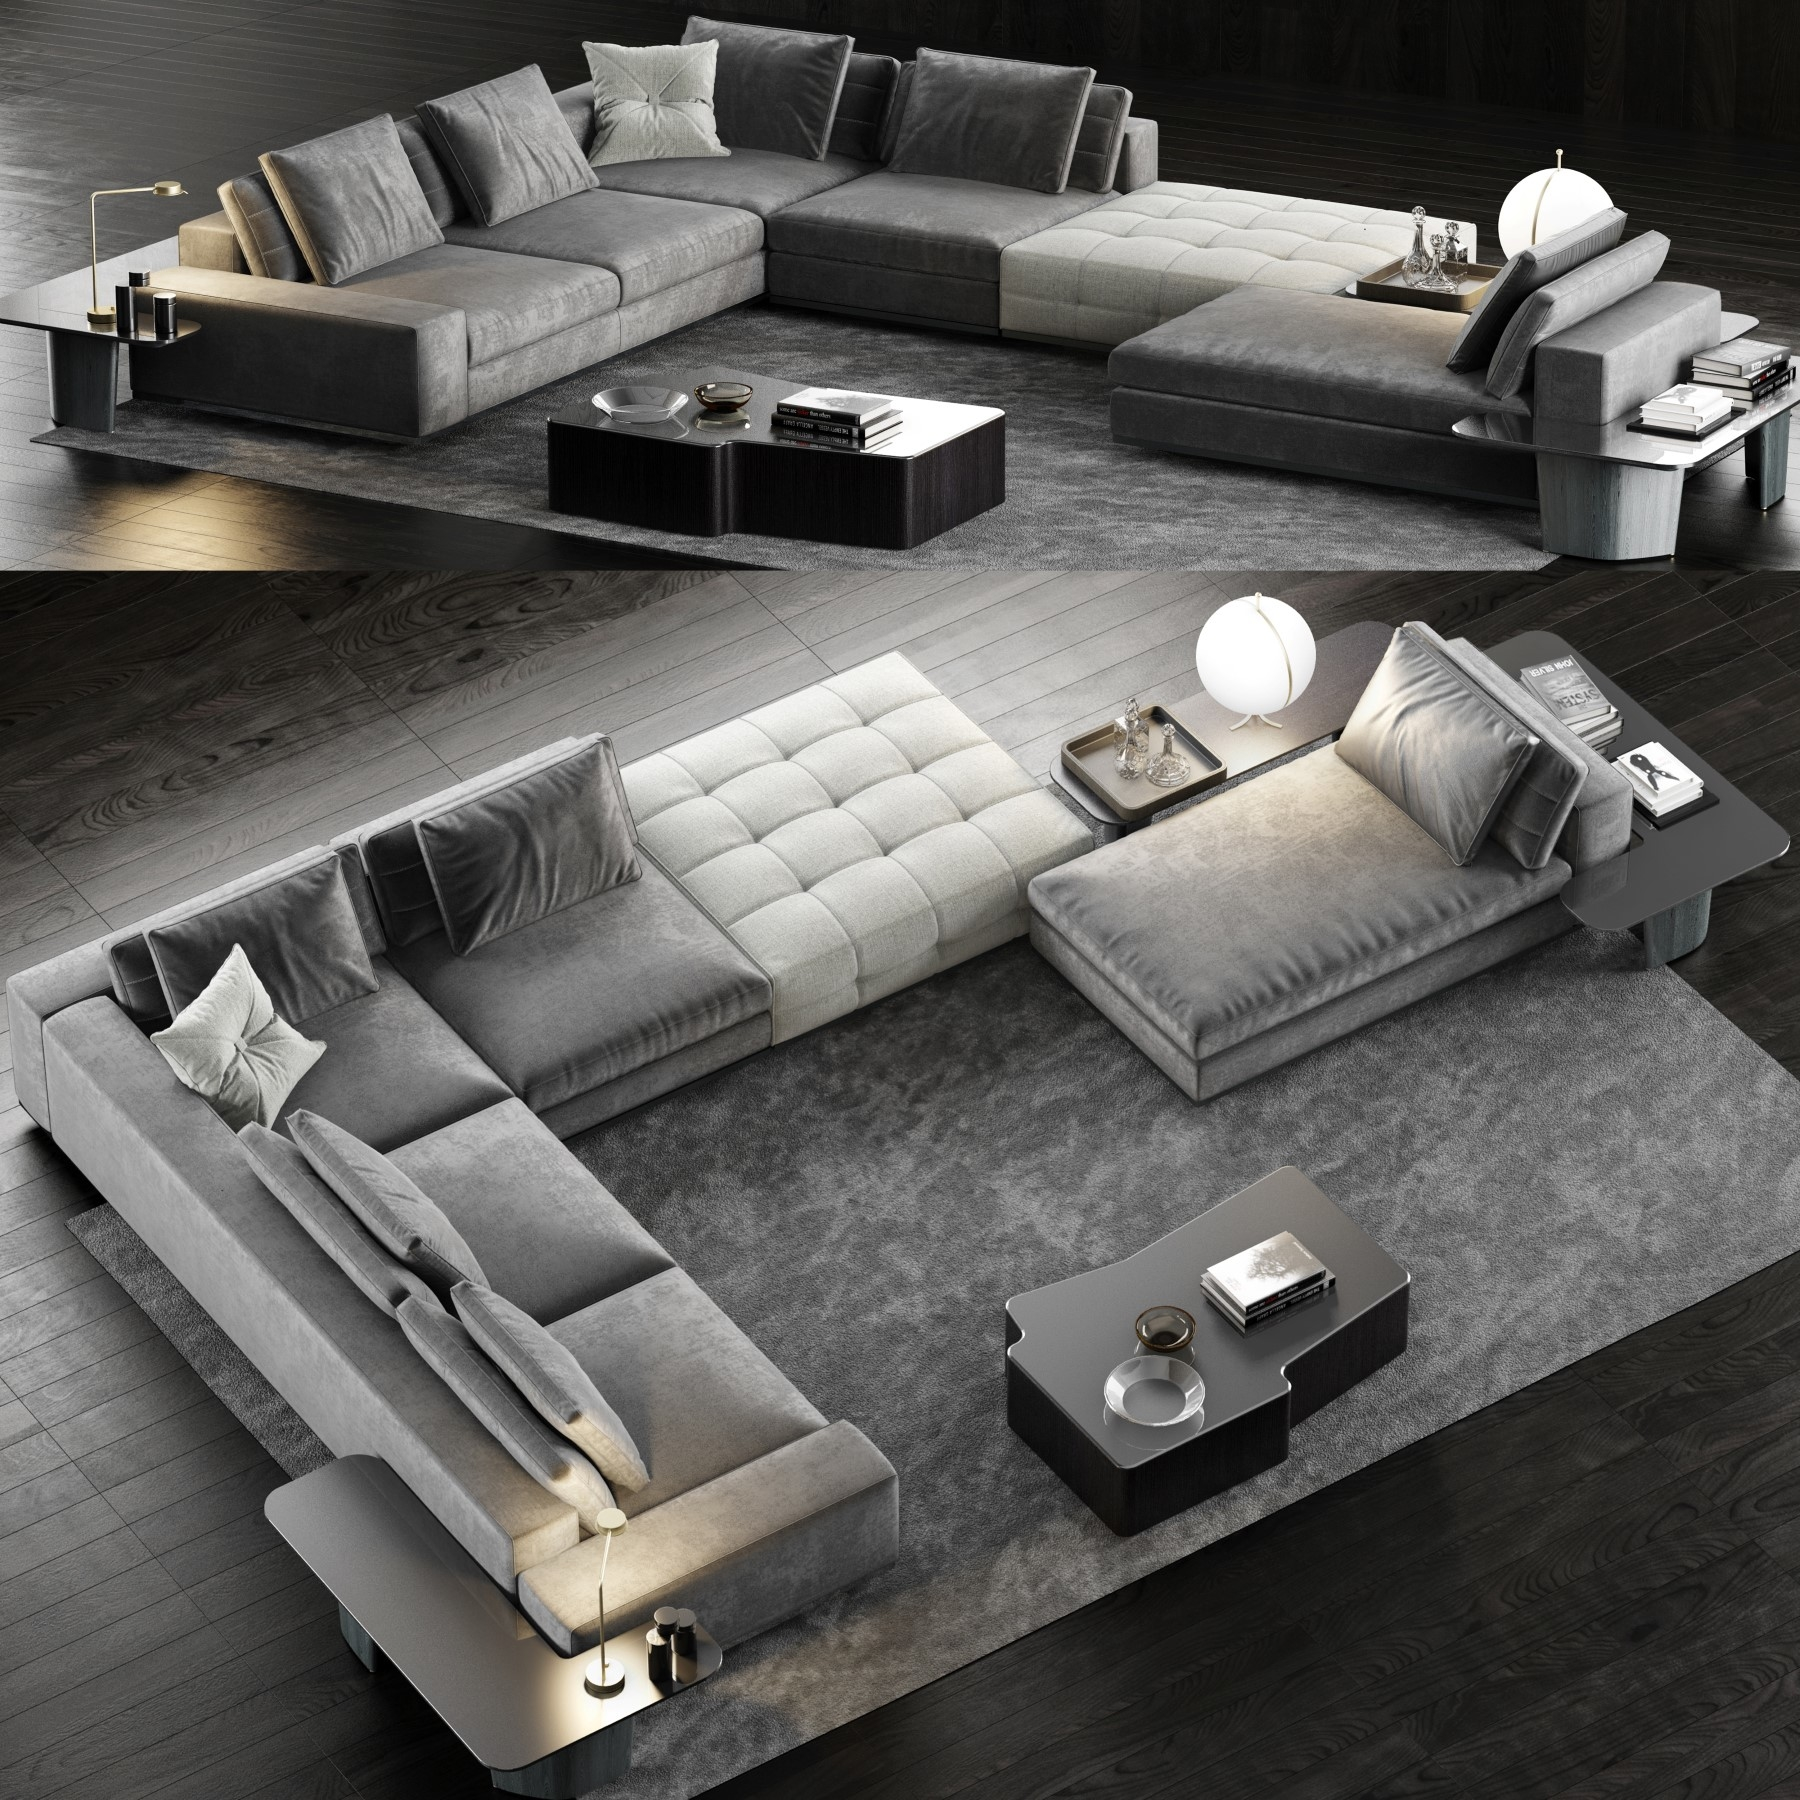 Full Size of Minotti Sofa Bed Indiana Lawrence For Sale Cad Block Hamilton Freeman Seating System Range Dimensions Megapol Antik Luxus Ikea Mit Schlaffunktion Barock Hussen Sofa Minotti Sofa